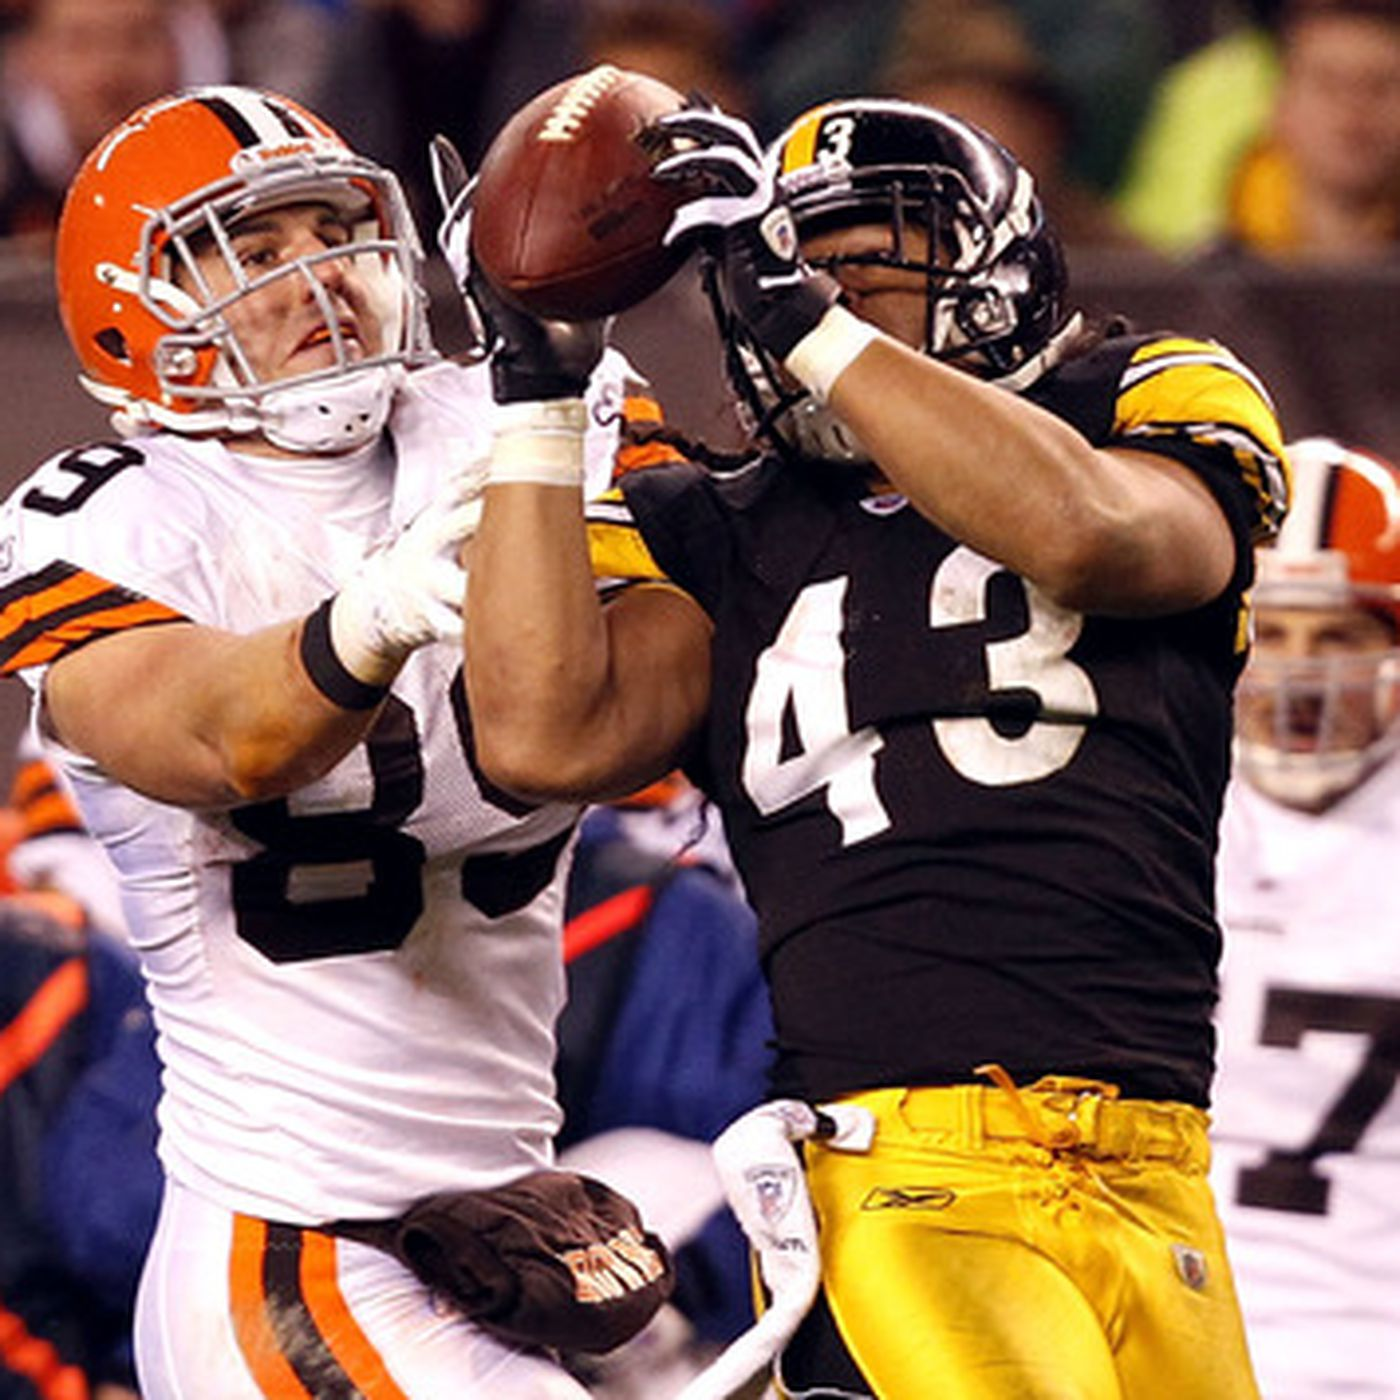 595092c7476 2013 Steelers position preview  Safeties - Behind the Steel Curtain